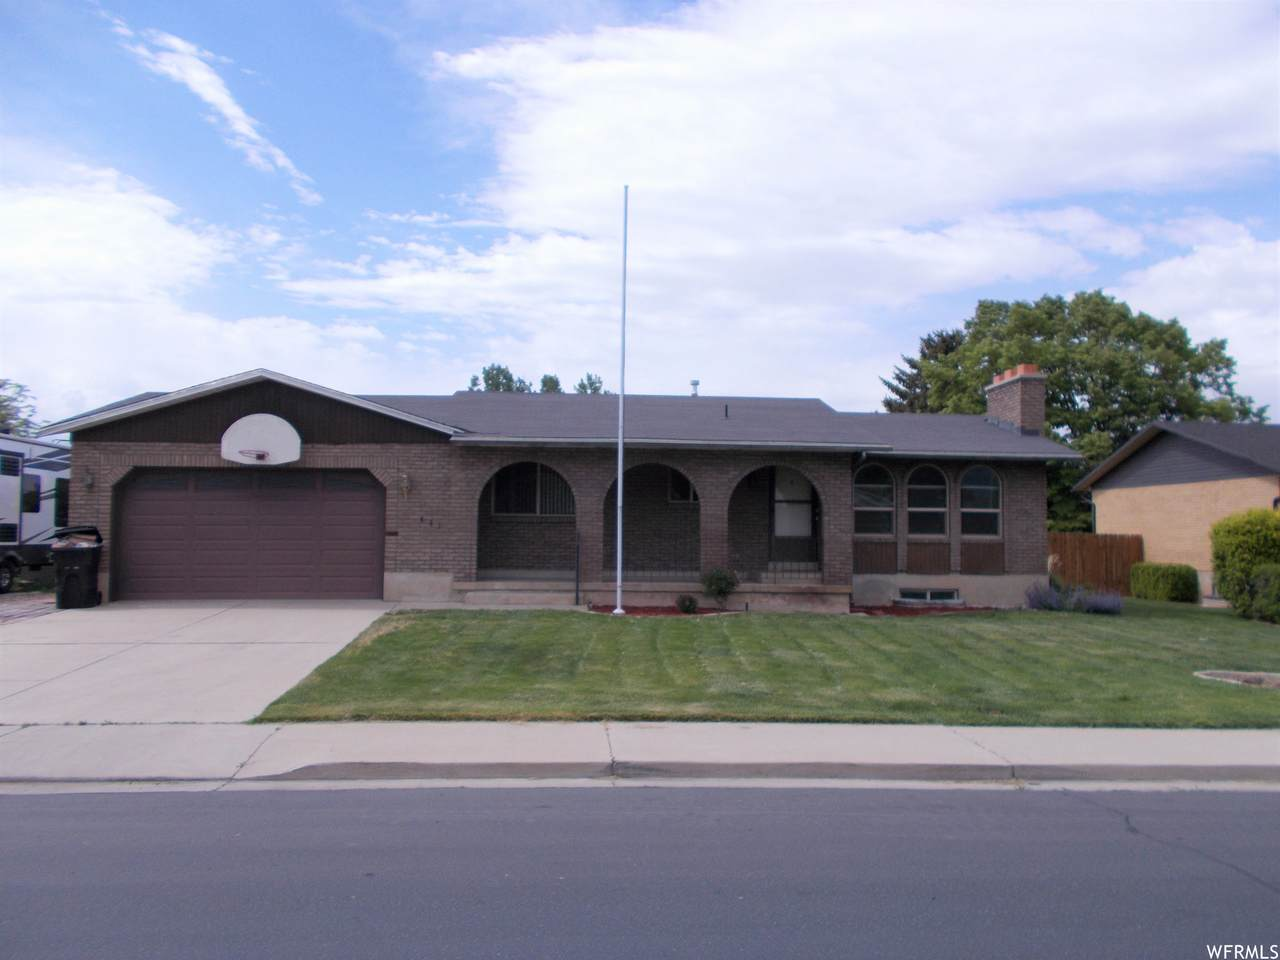 681 Valley Dr - Photo 1